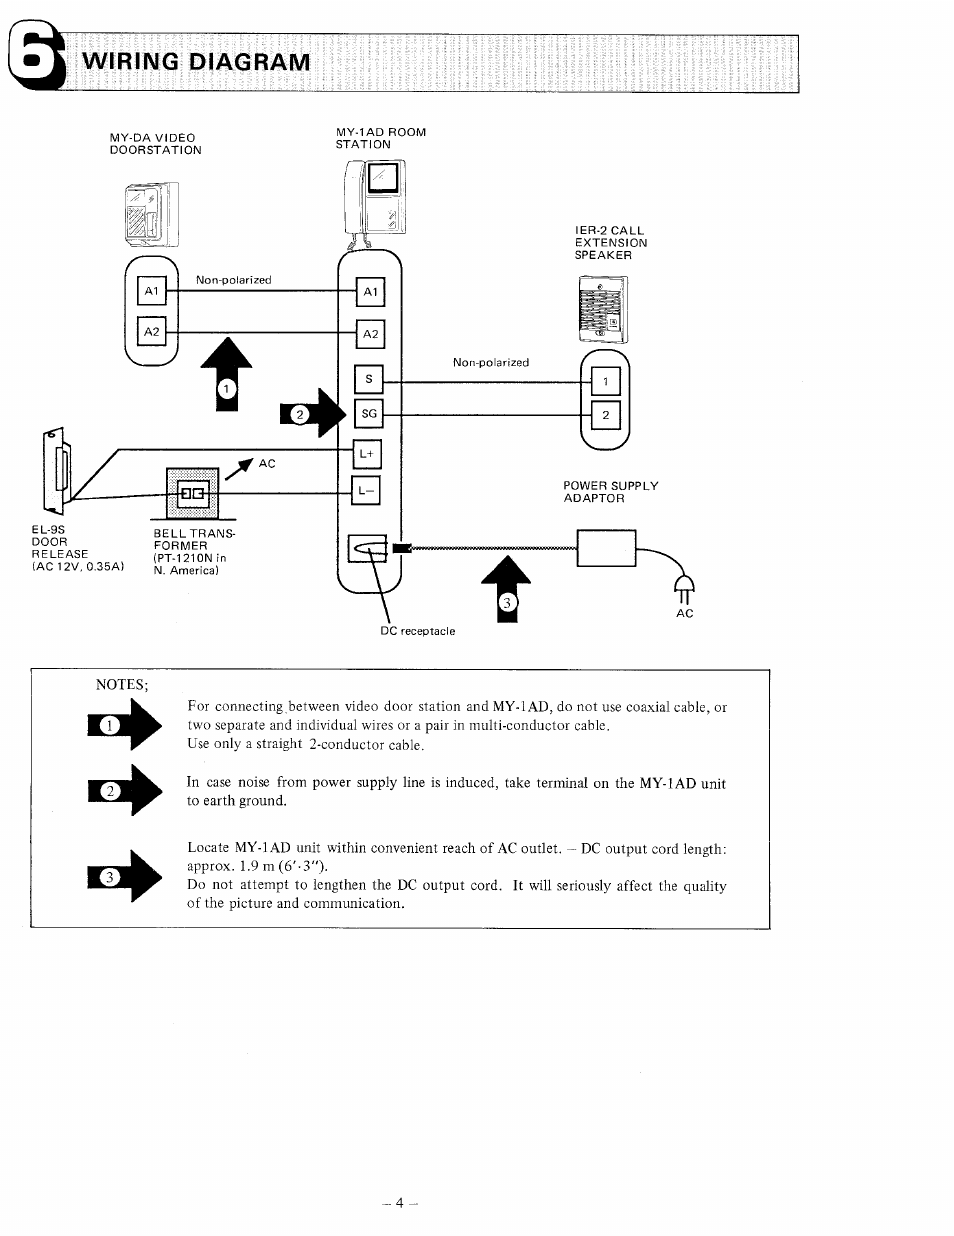 Wiring Diagram Aiphone My 1ad User Manual Page 4 6